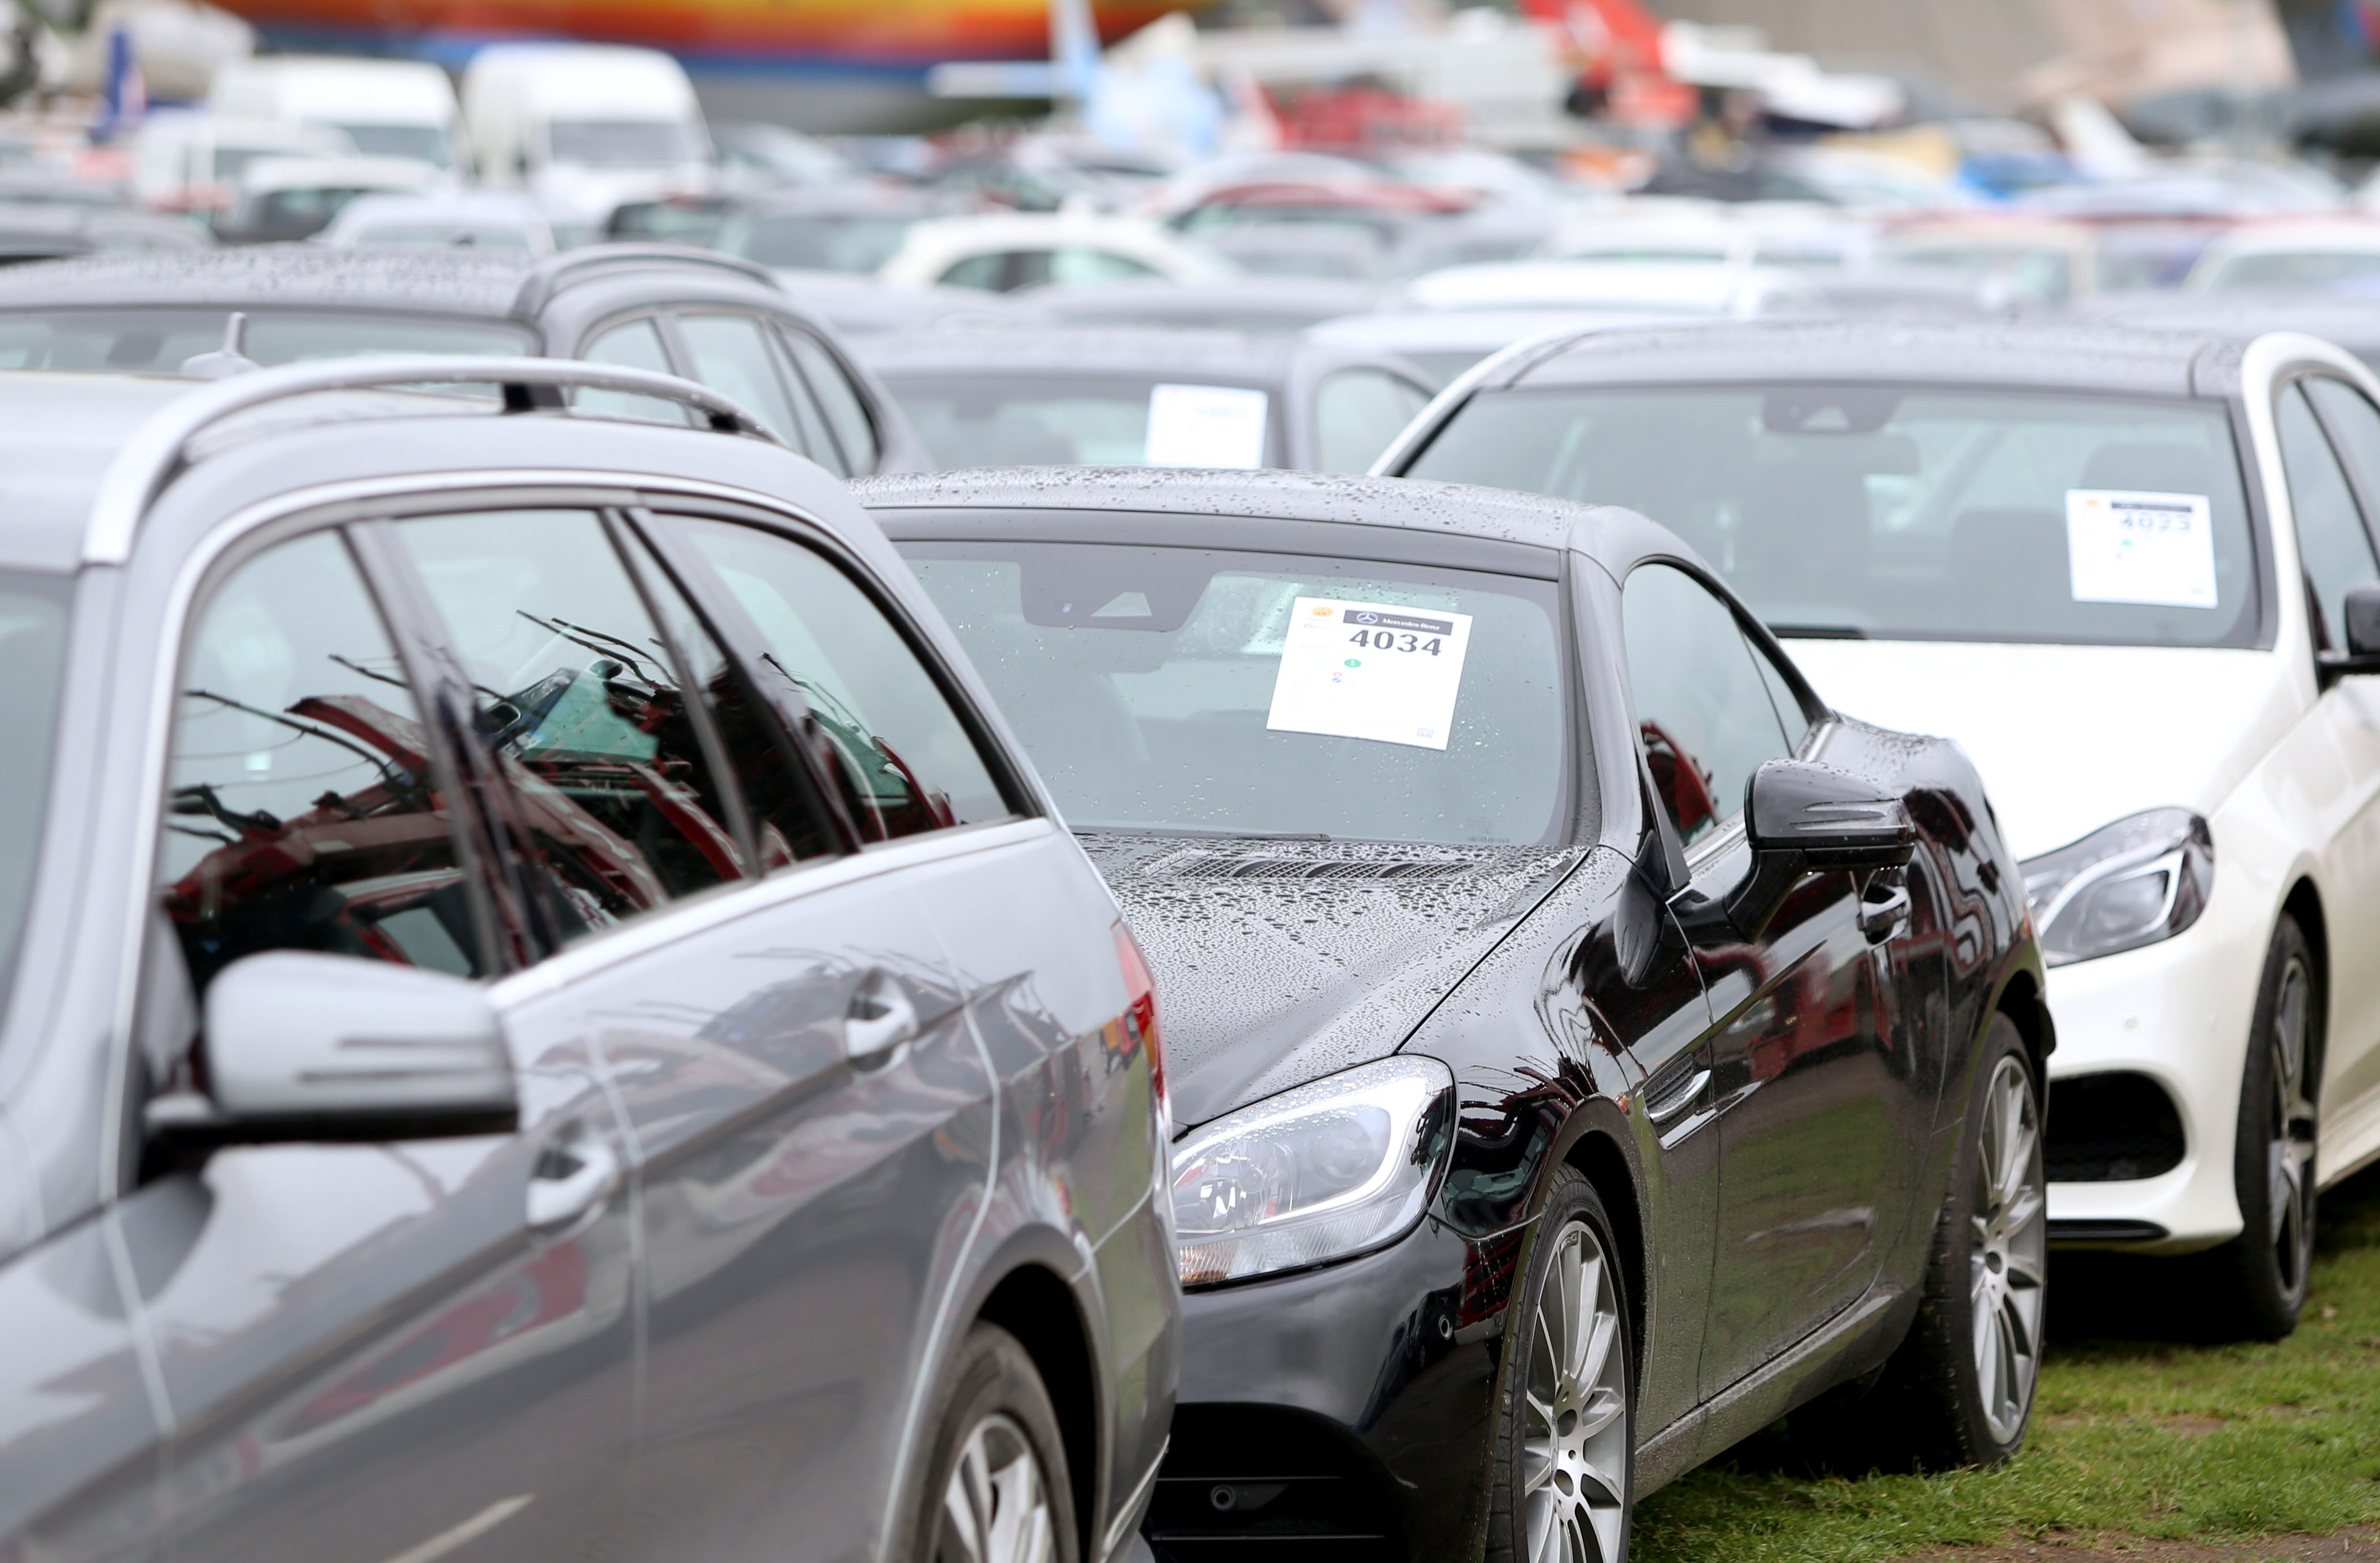 Reconditioning 'biggest barrier' to getting vehicles on sale